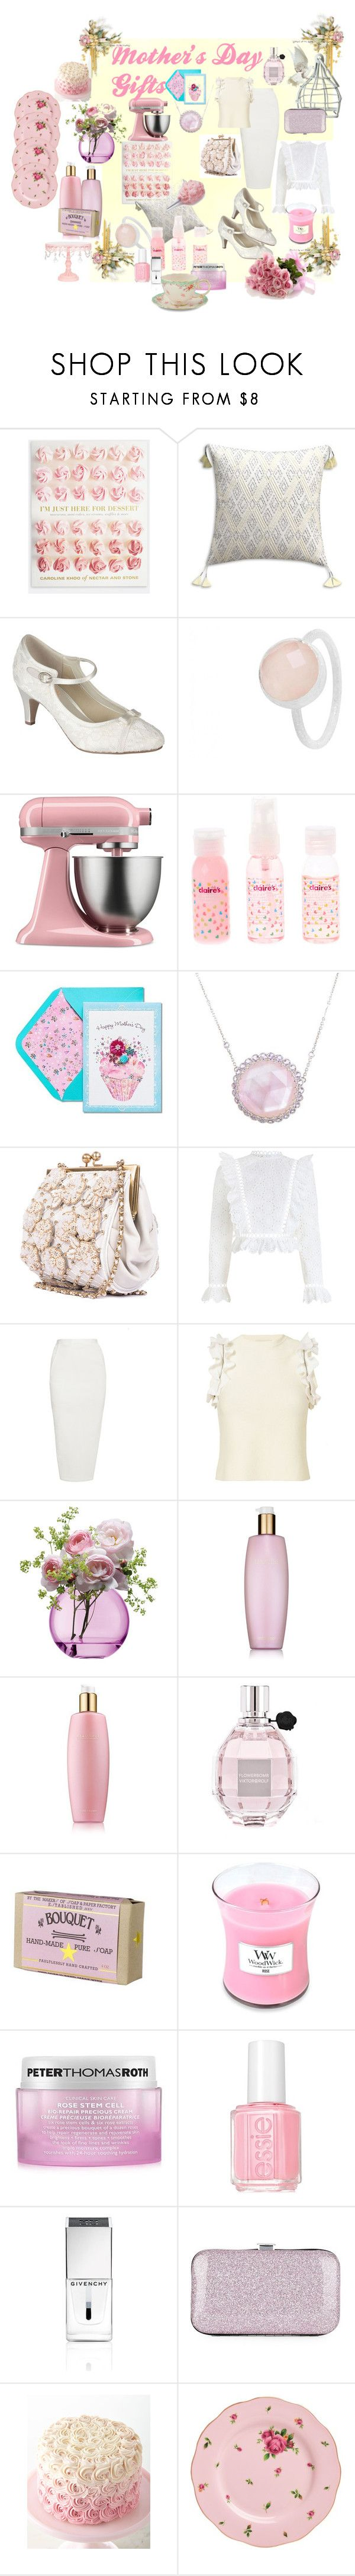 Gifts Every Mother Would Love by michelle-woodworth-webb on Polyvore featuring Zimmermann, 3.1 Phillip Lim, Rick Owens, Pink Paradox London, Laura Munder, Pomegranate, Viktor & Rolf, Peter Thomas Roth, Estée Lauder and Soap & Paper Factory